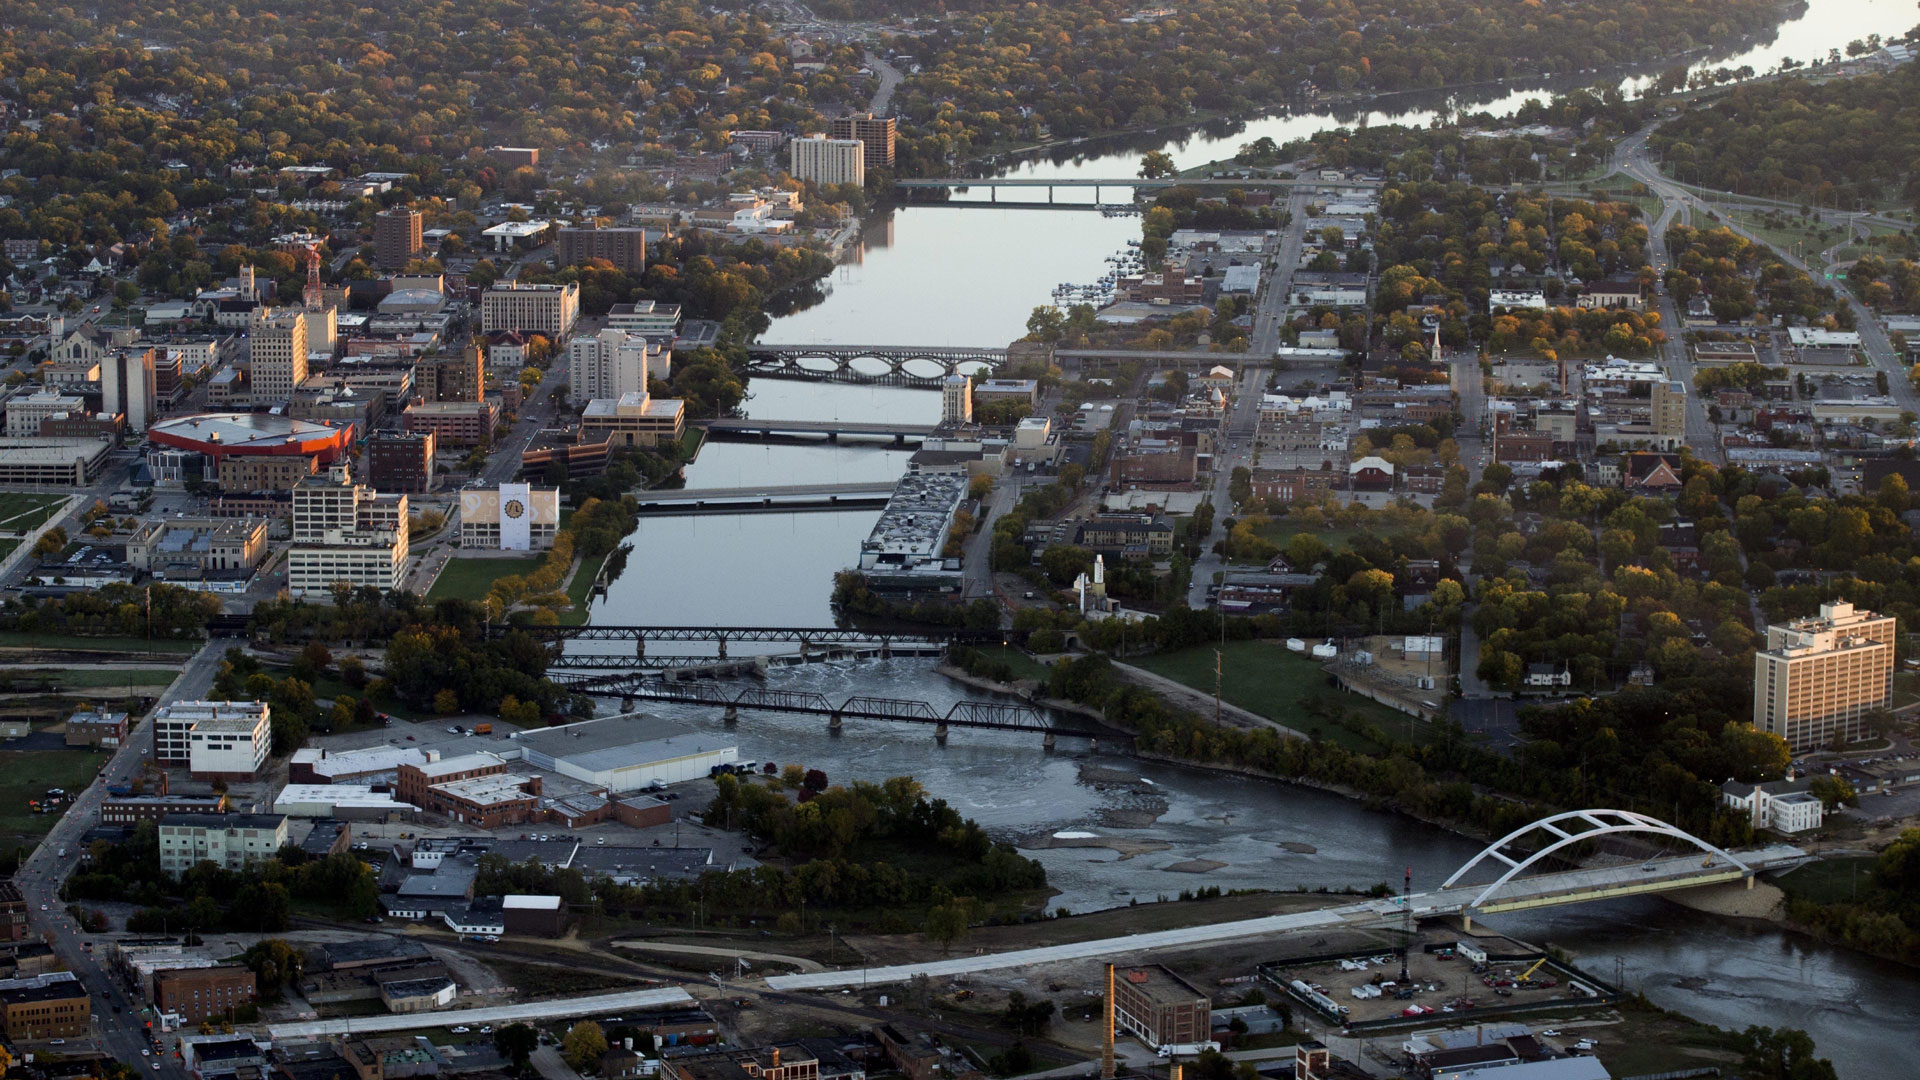 Aerial image of downtown Rockford, Illinois, looking north, with view of the Rock River.